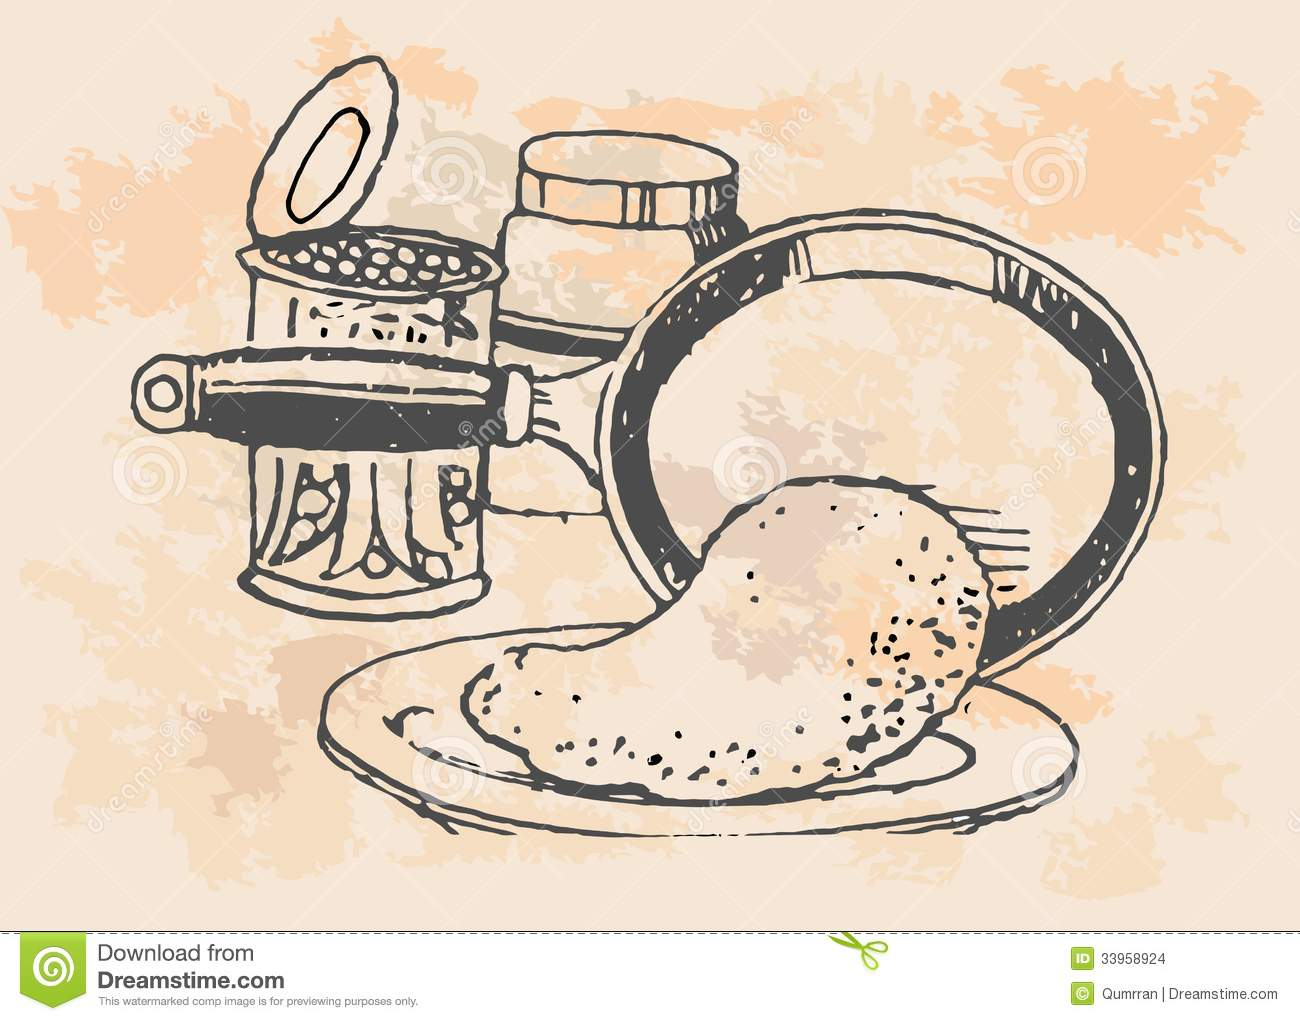 kitchen items in vintage style stock images  image, Kitchen design